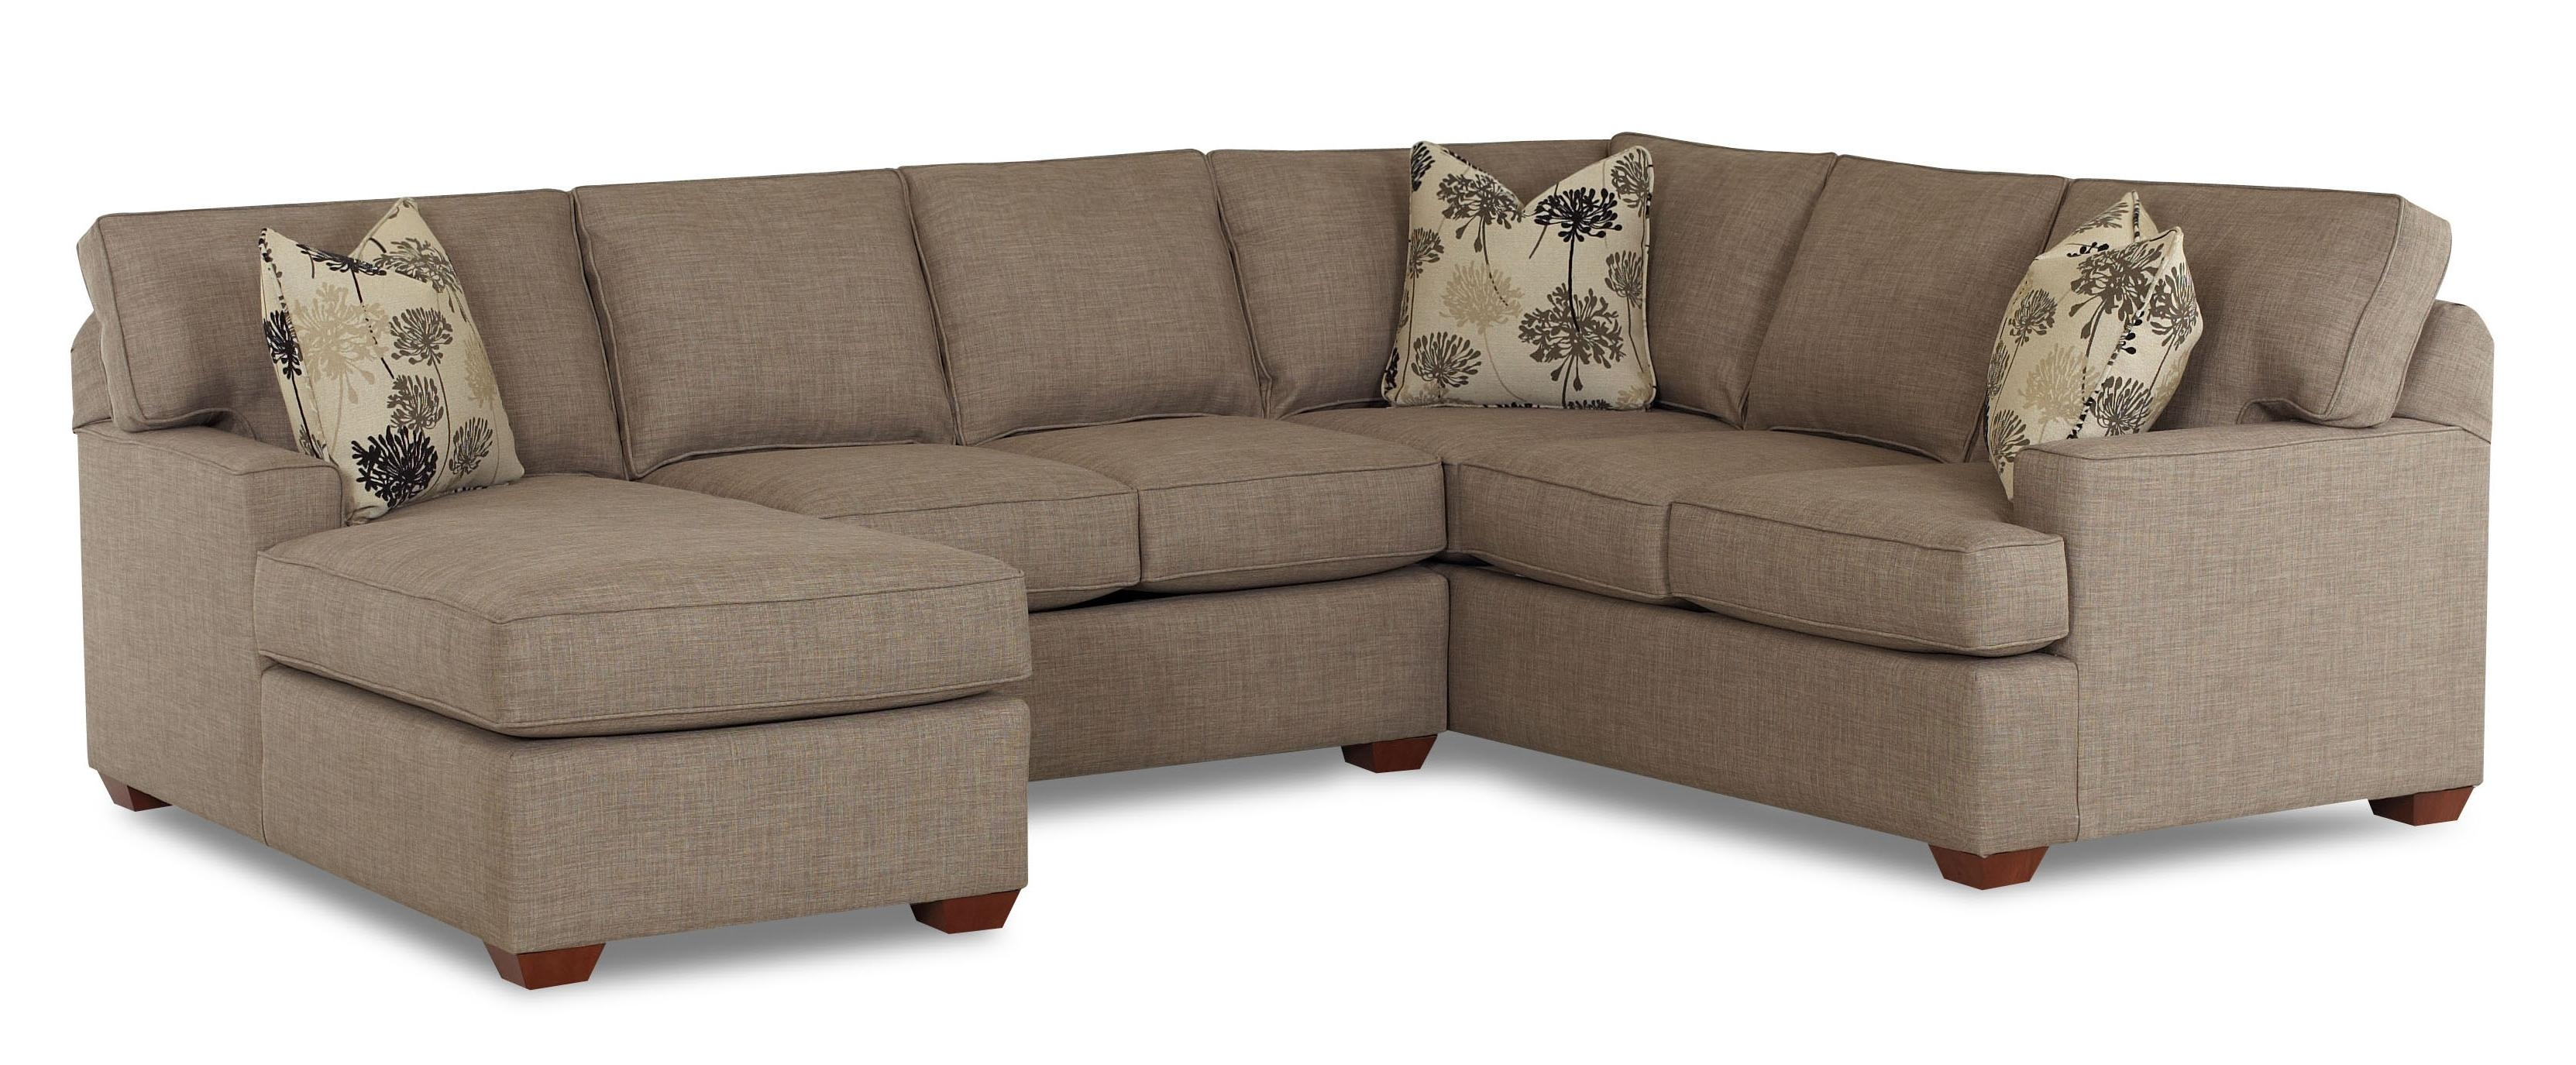 Pantego 3 Piece Sectional Sofa With Raf Chaiseklaussner | Home Inside Nova Scotia Sectional Sofas (Image 6 of 10)